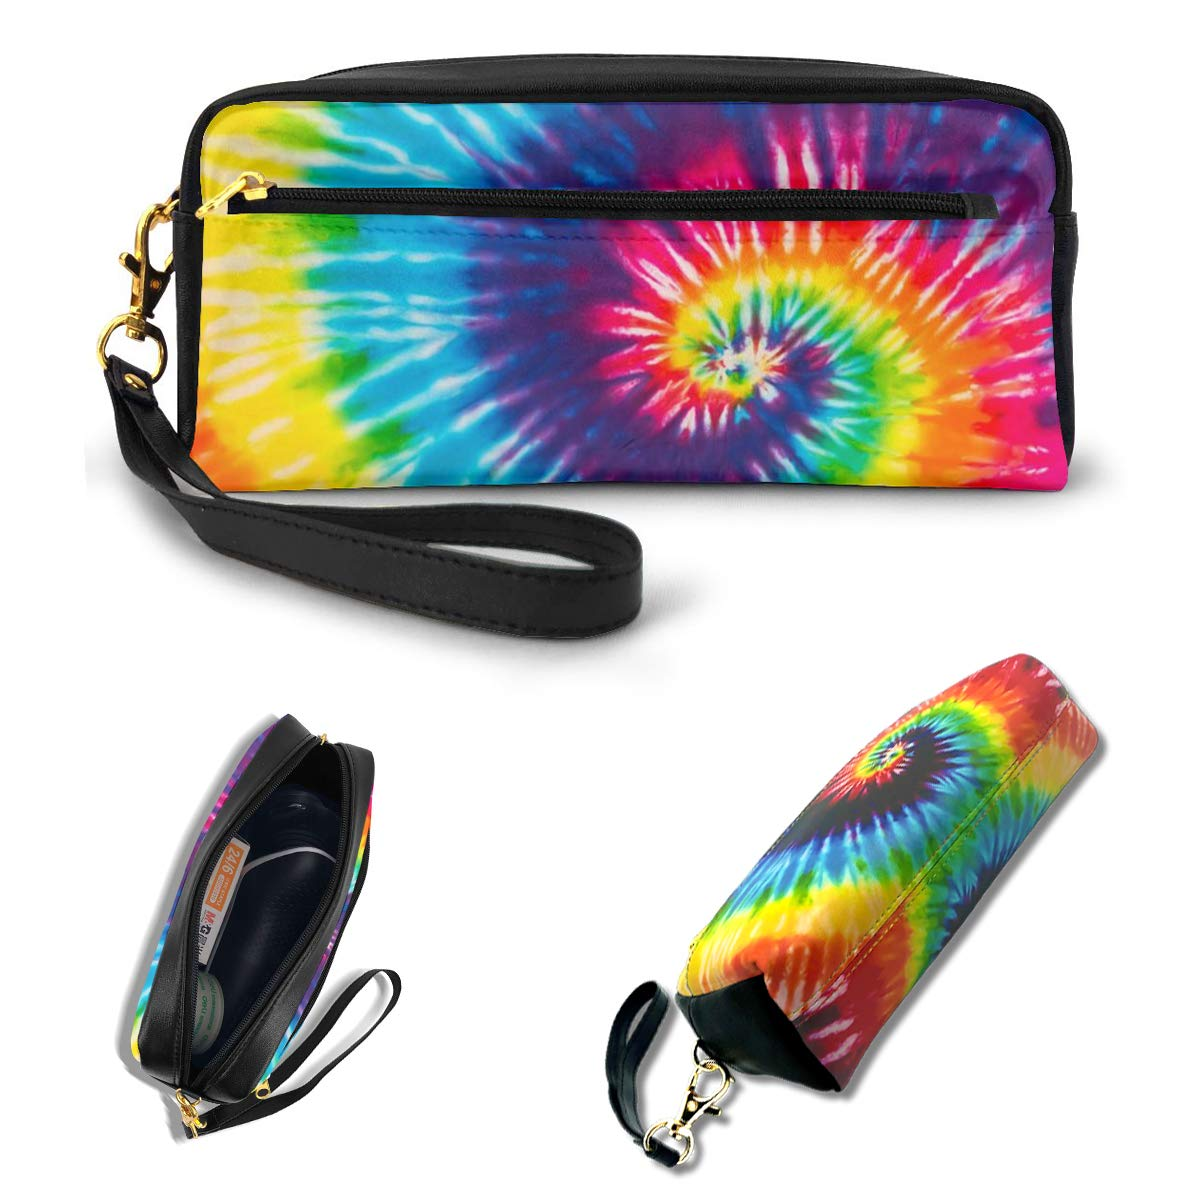 AHOOCUSTOM Cute 3D Tie Dye Pencil Case for Girls Boys Teens, Rainbow Makeup Bag for Women, Office School Stationery Soft Faux Leather Zippers Portable Pouch